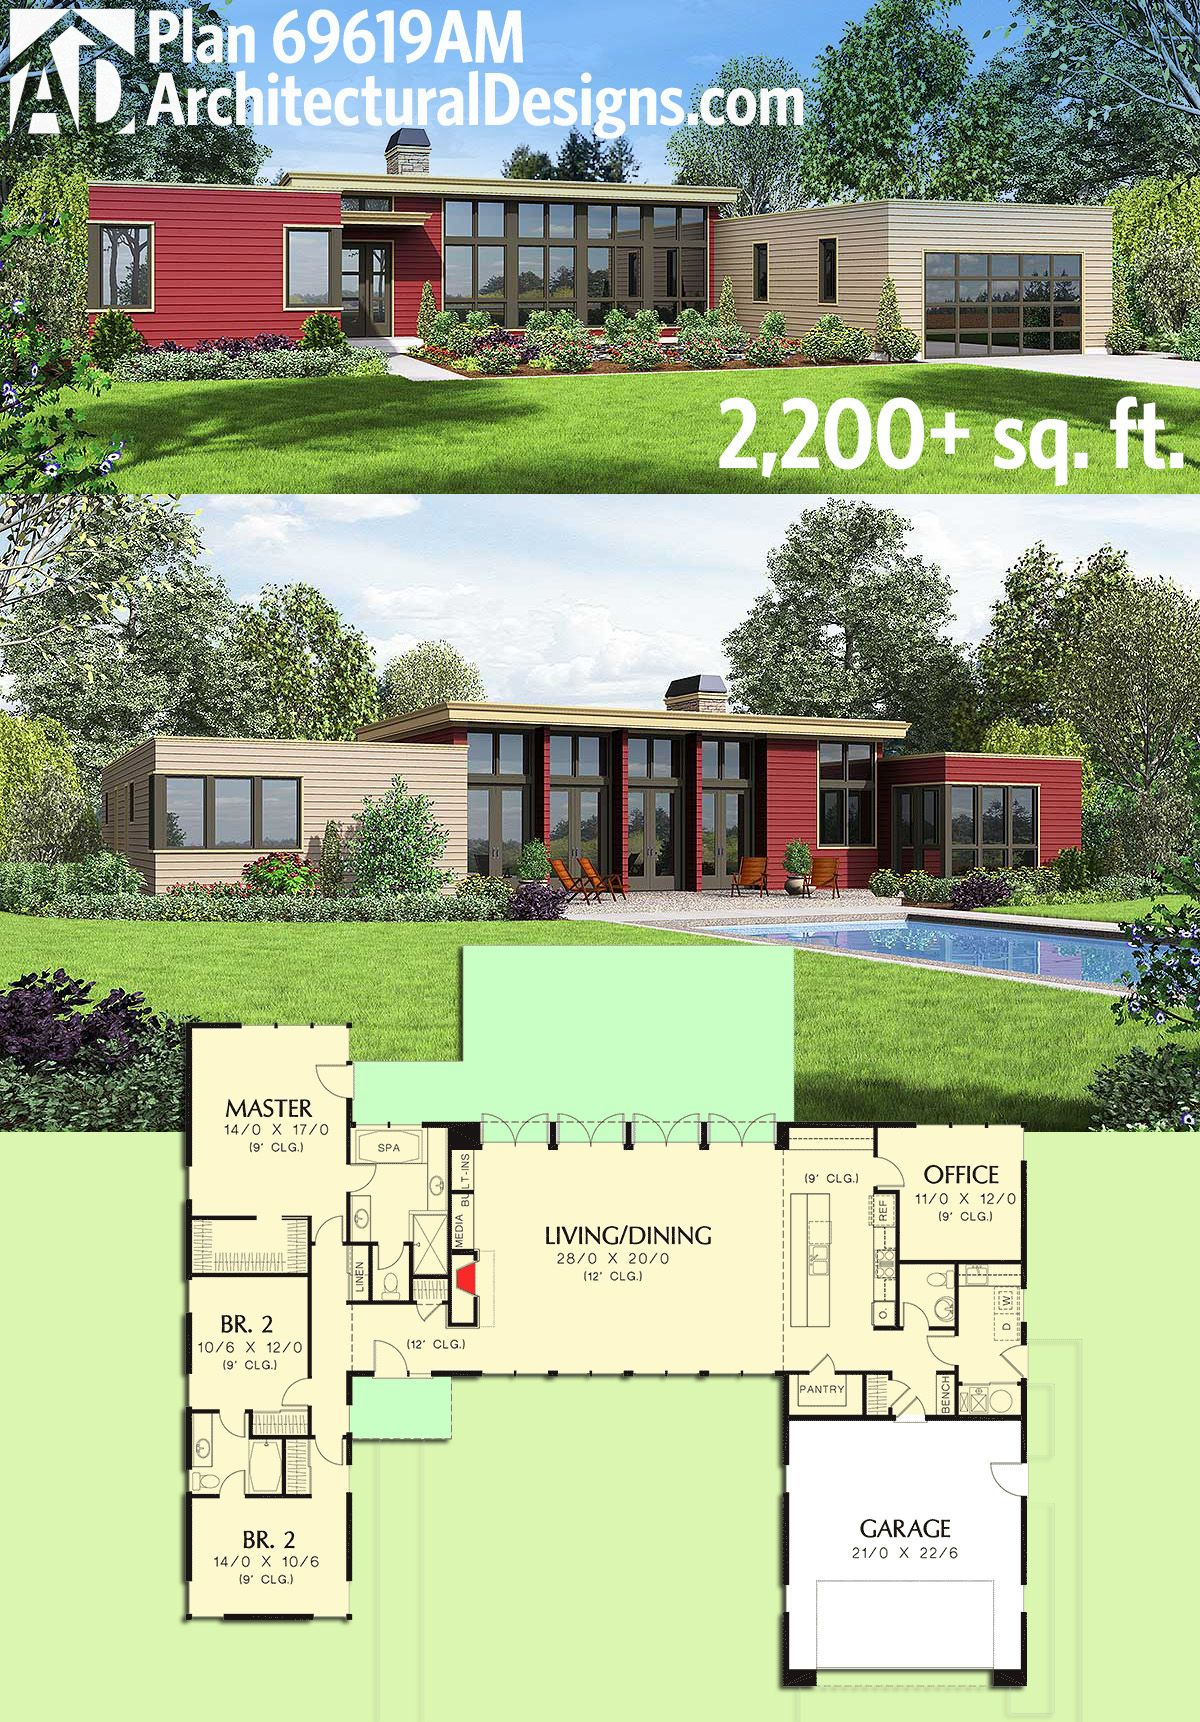 Open Concept House Plans Awesome Plan Am 3 Bed Modern House Plan with Open Concept